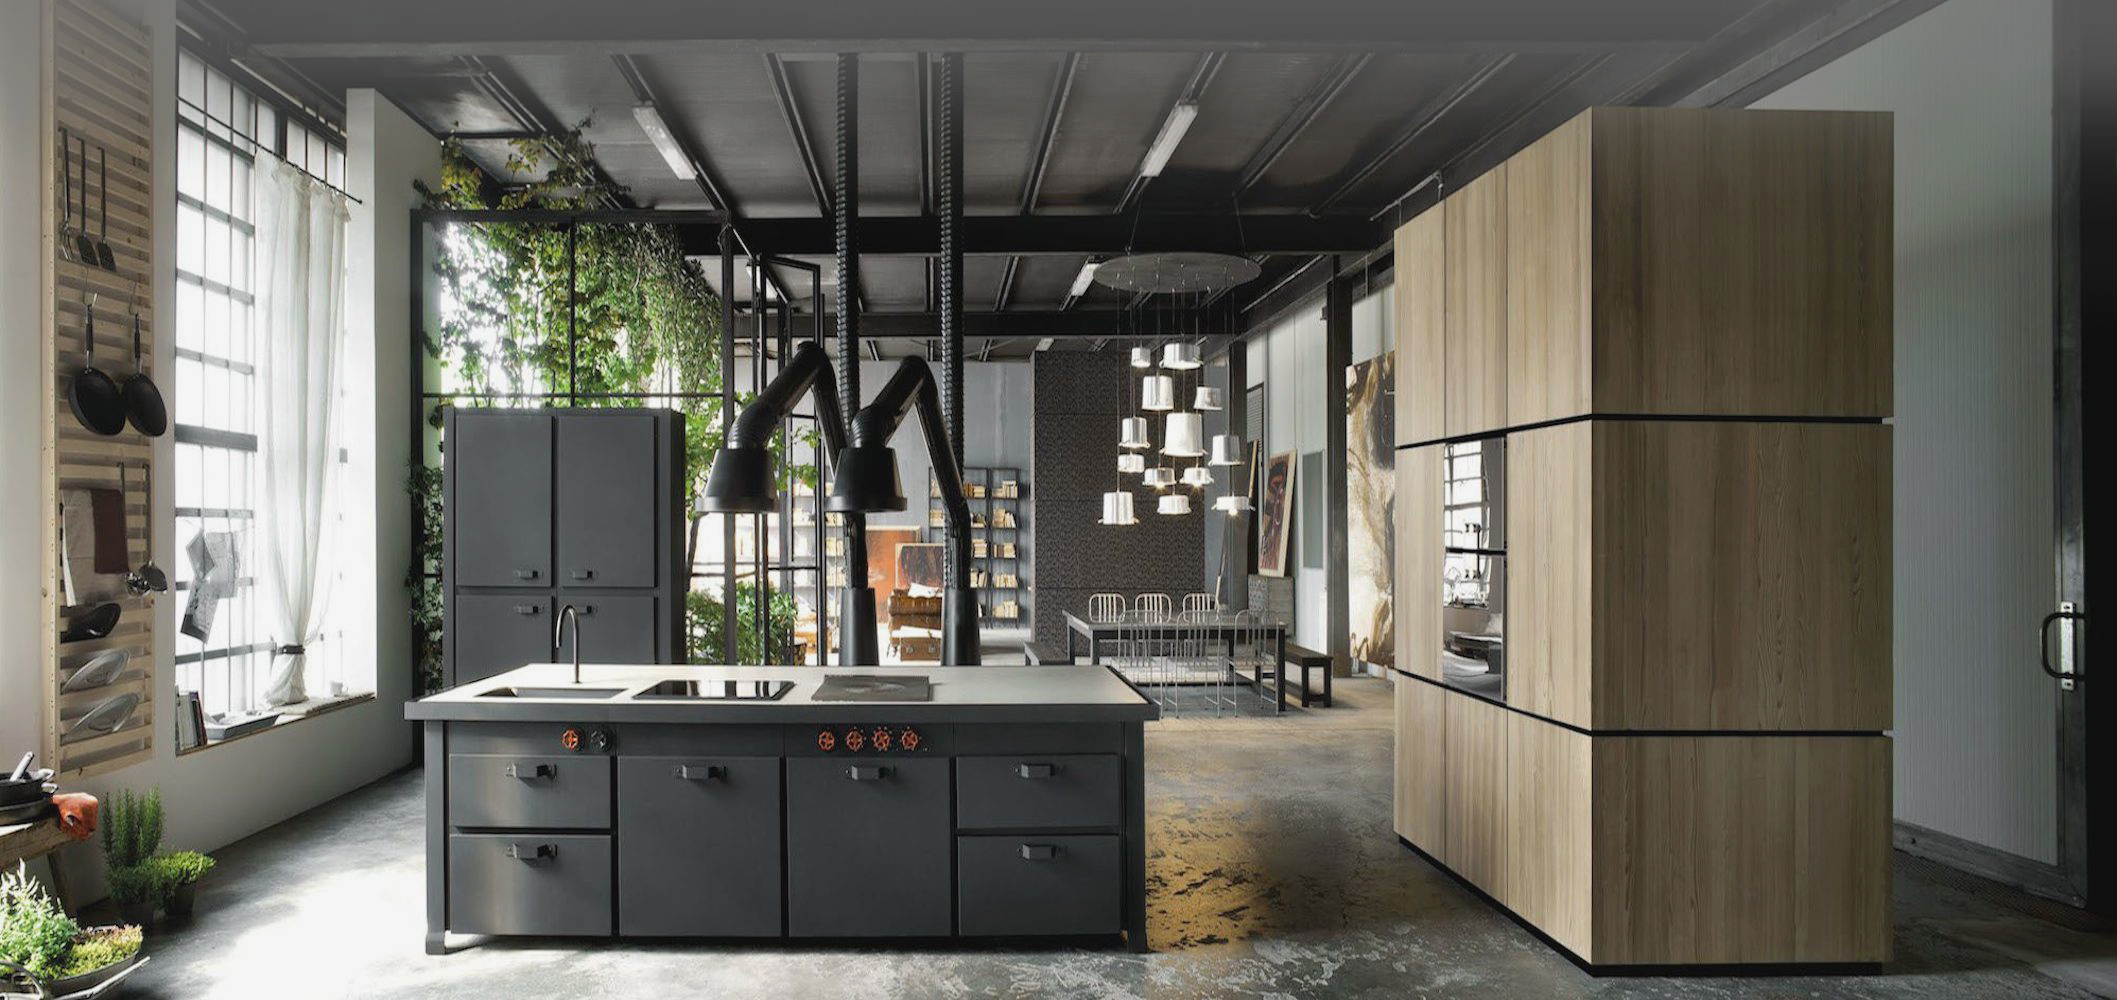 The kitchen here features a unique use of industrial style space, with black piping connecting island to ceiling, with large natural wood freestanding wall holding oven to the right. Outer wall features built in dish rack, ceiling height windows.